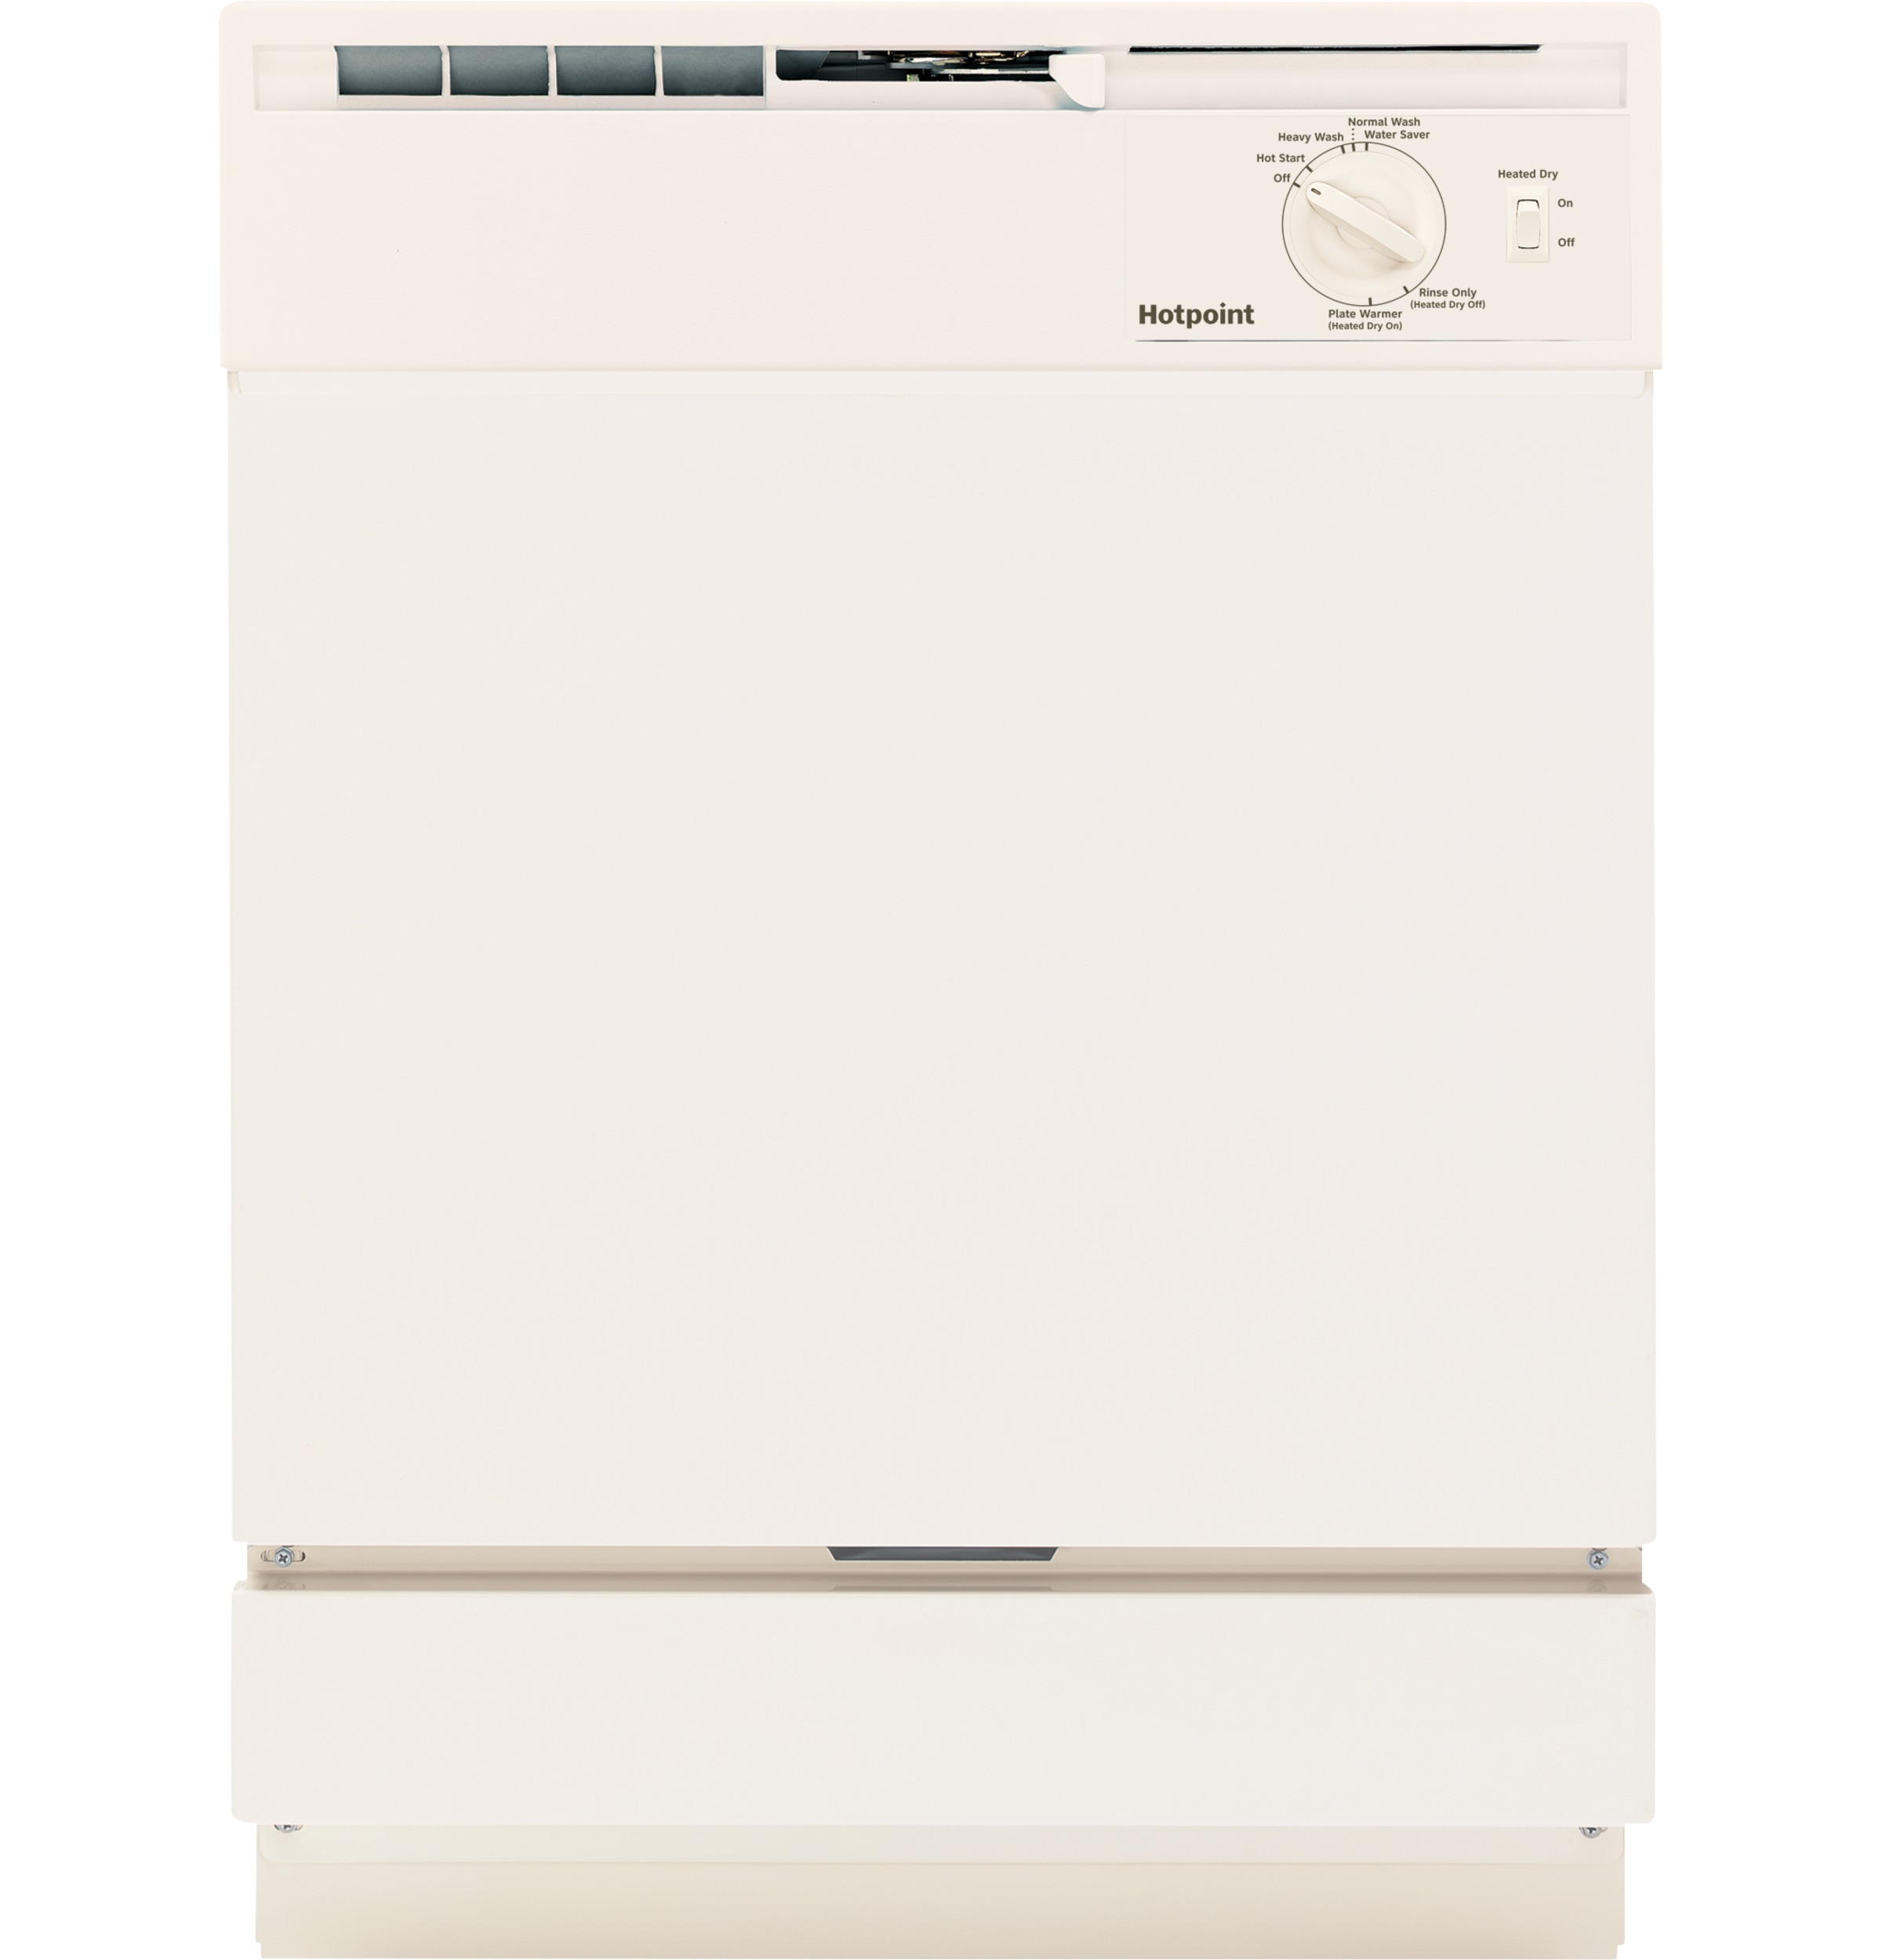 Model: HDA2100HCC | Hotpoint Hotpoint® Built-In Dishwasher